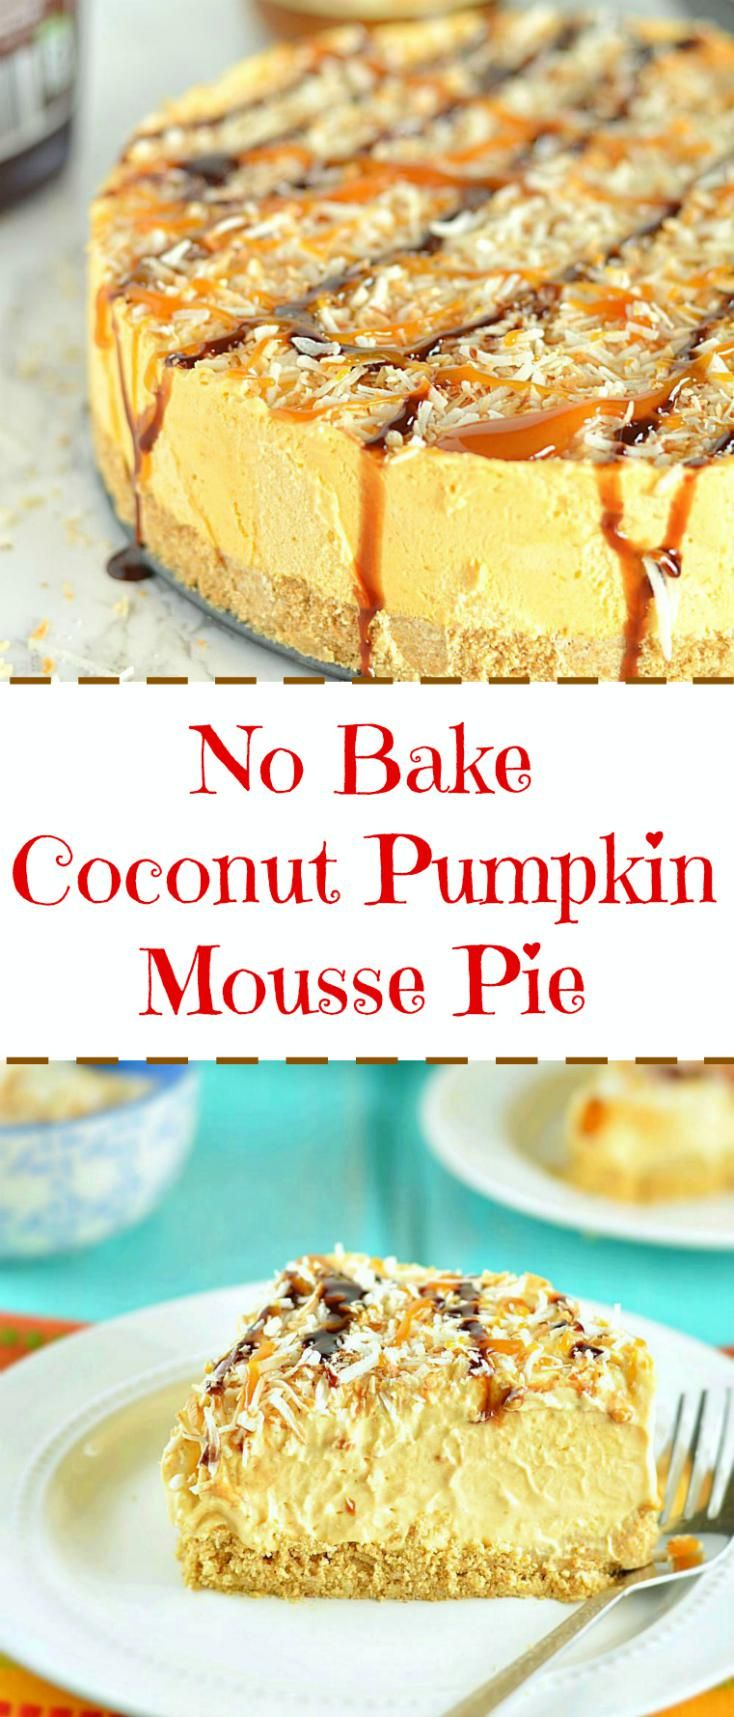 No Bake Coconut Pumpkin Mousse Pie Topped with mounds of toasted coconut, chocolate and caramel syrup this rich and creamy Mousse Pie will surely rock your next dinner party!!